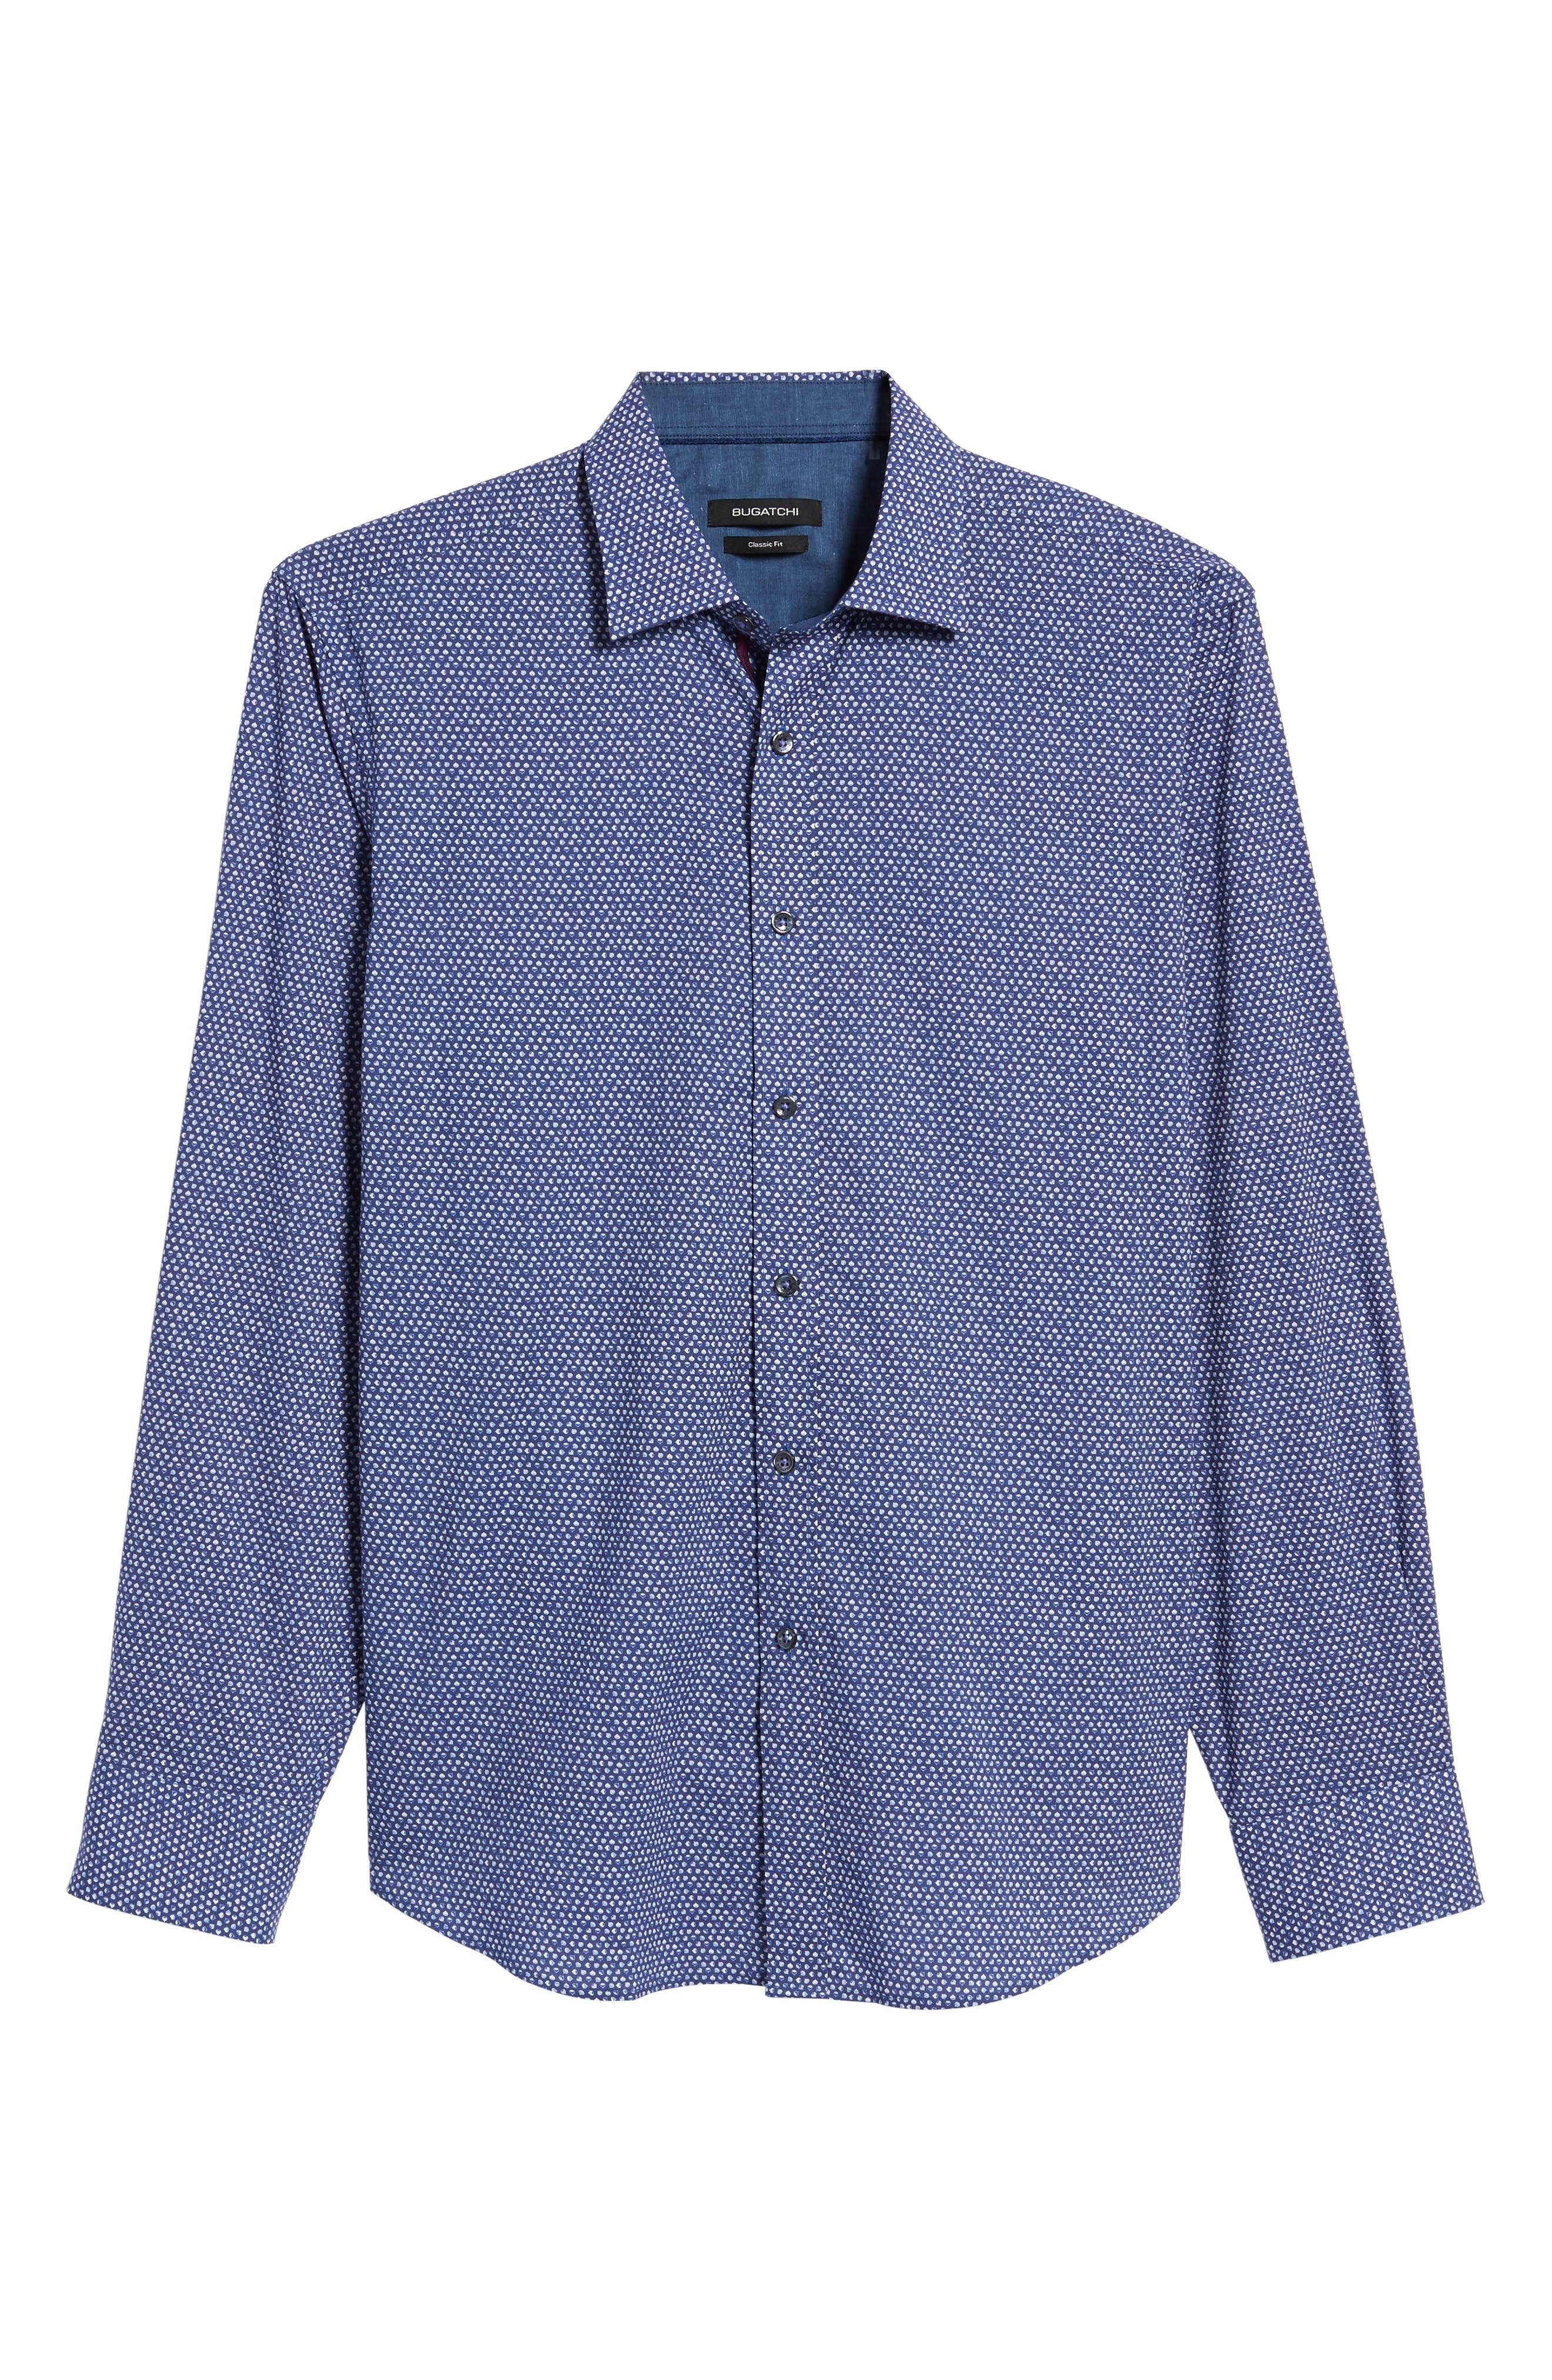 Classic Fit Raindrop Print Sport Shirt,                             Alternate thumbnail 6, color,                             513